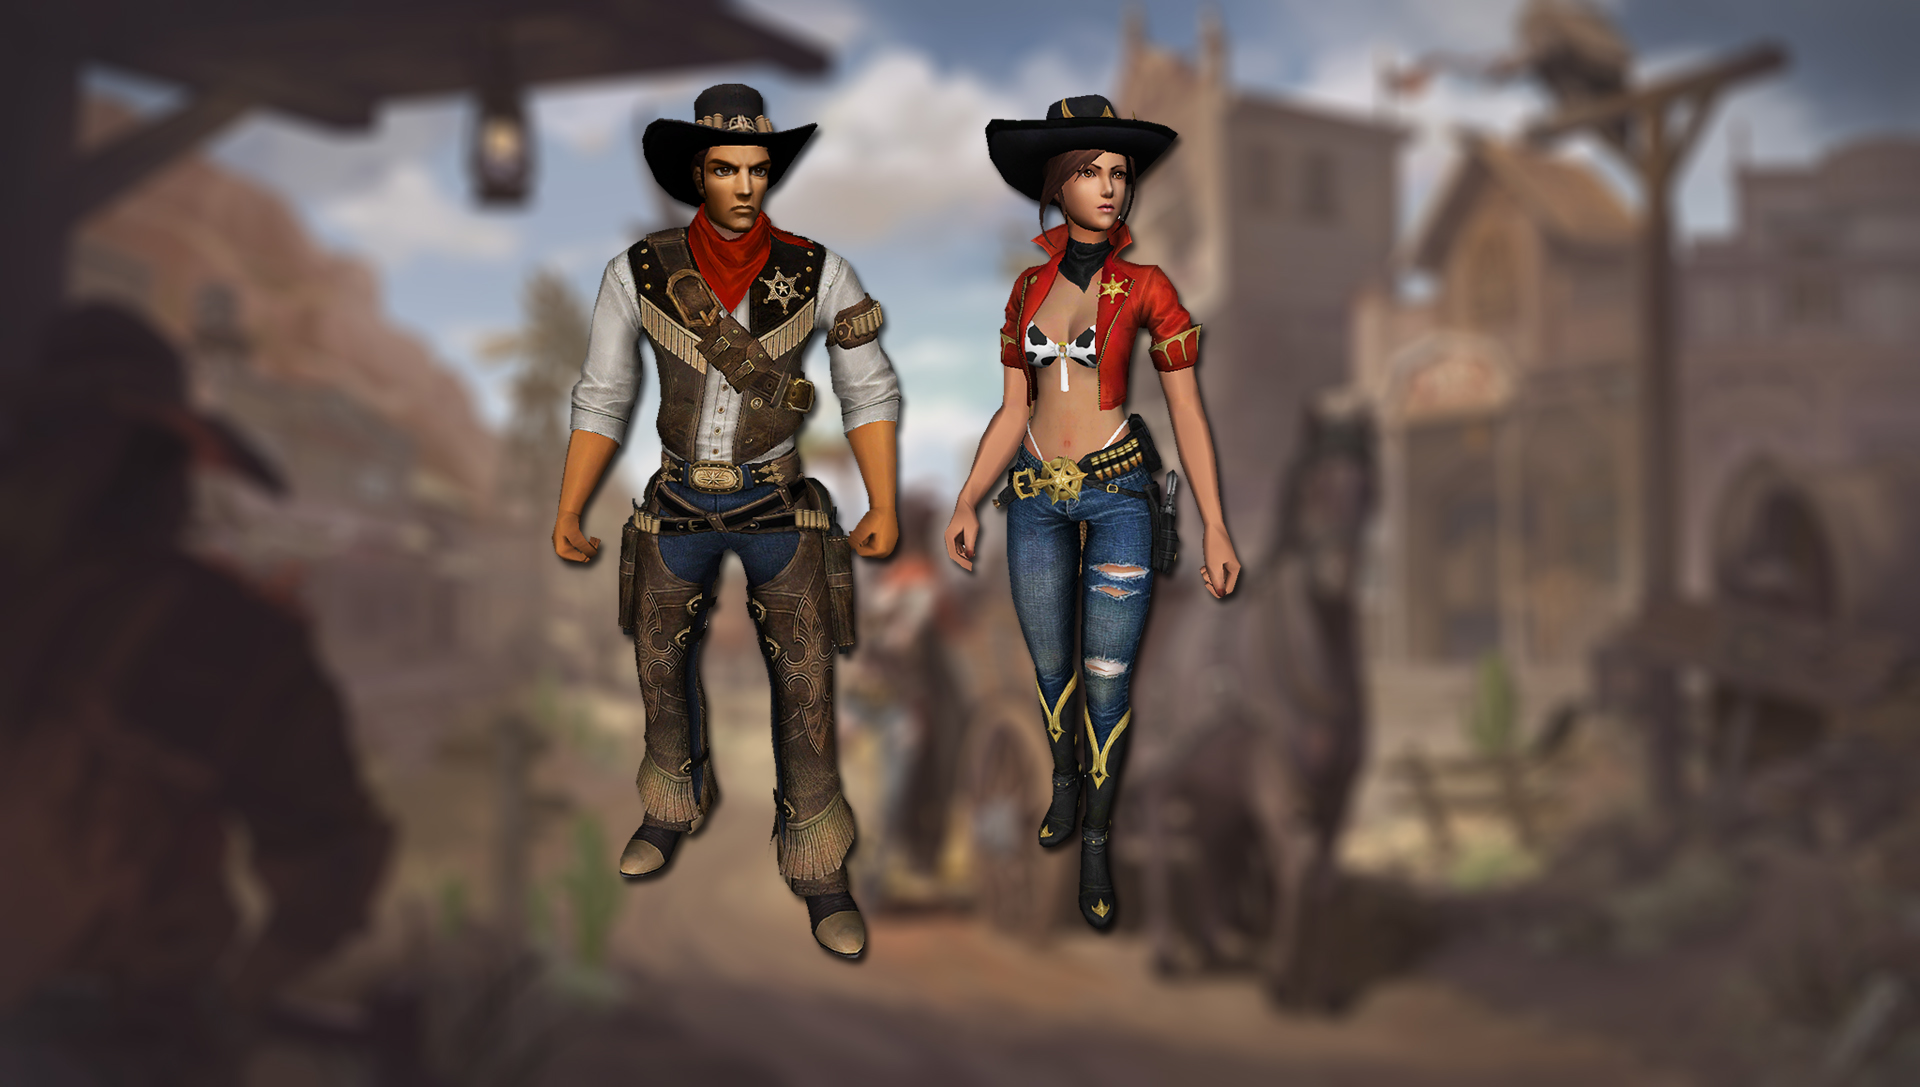 You are currently viewing Cowboy costumes